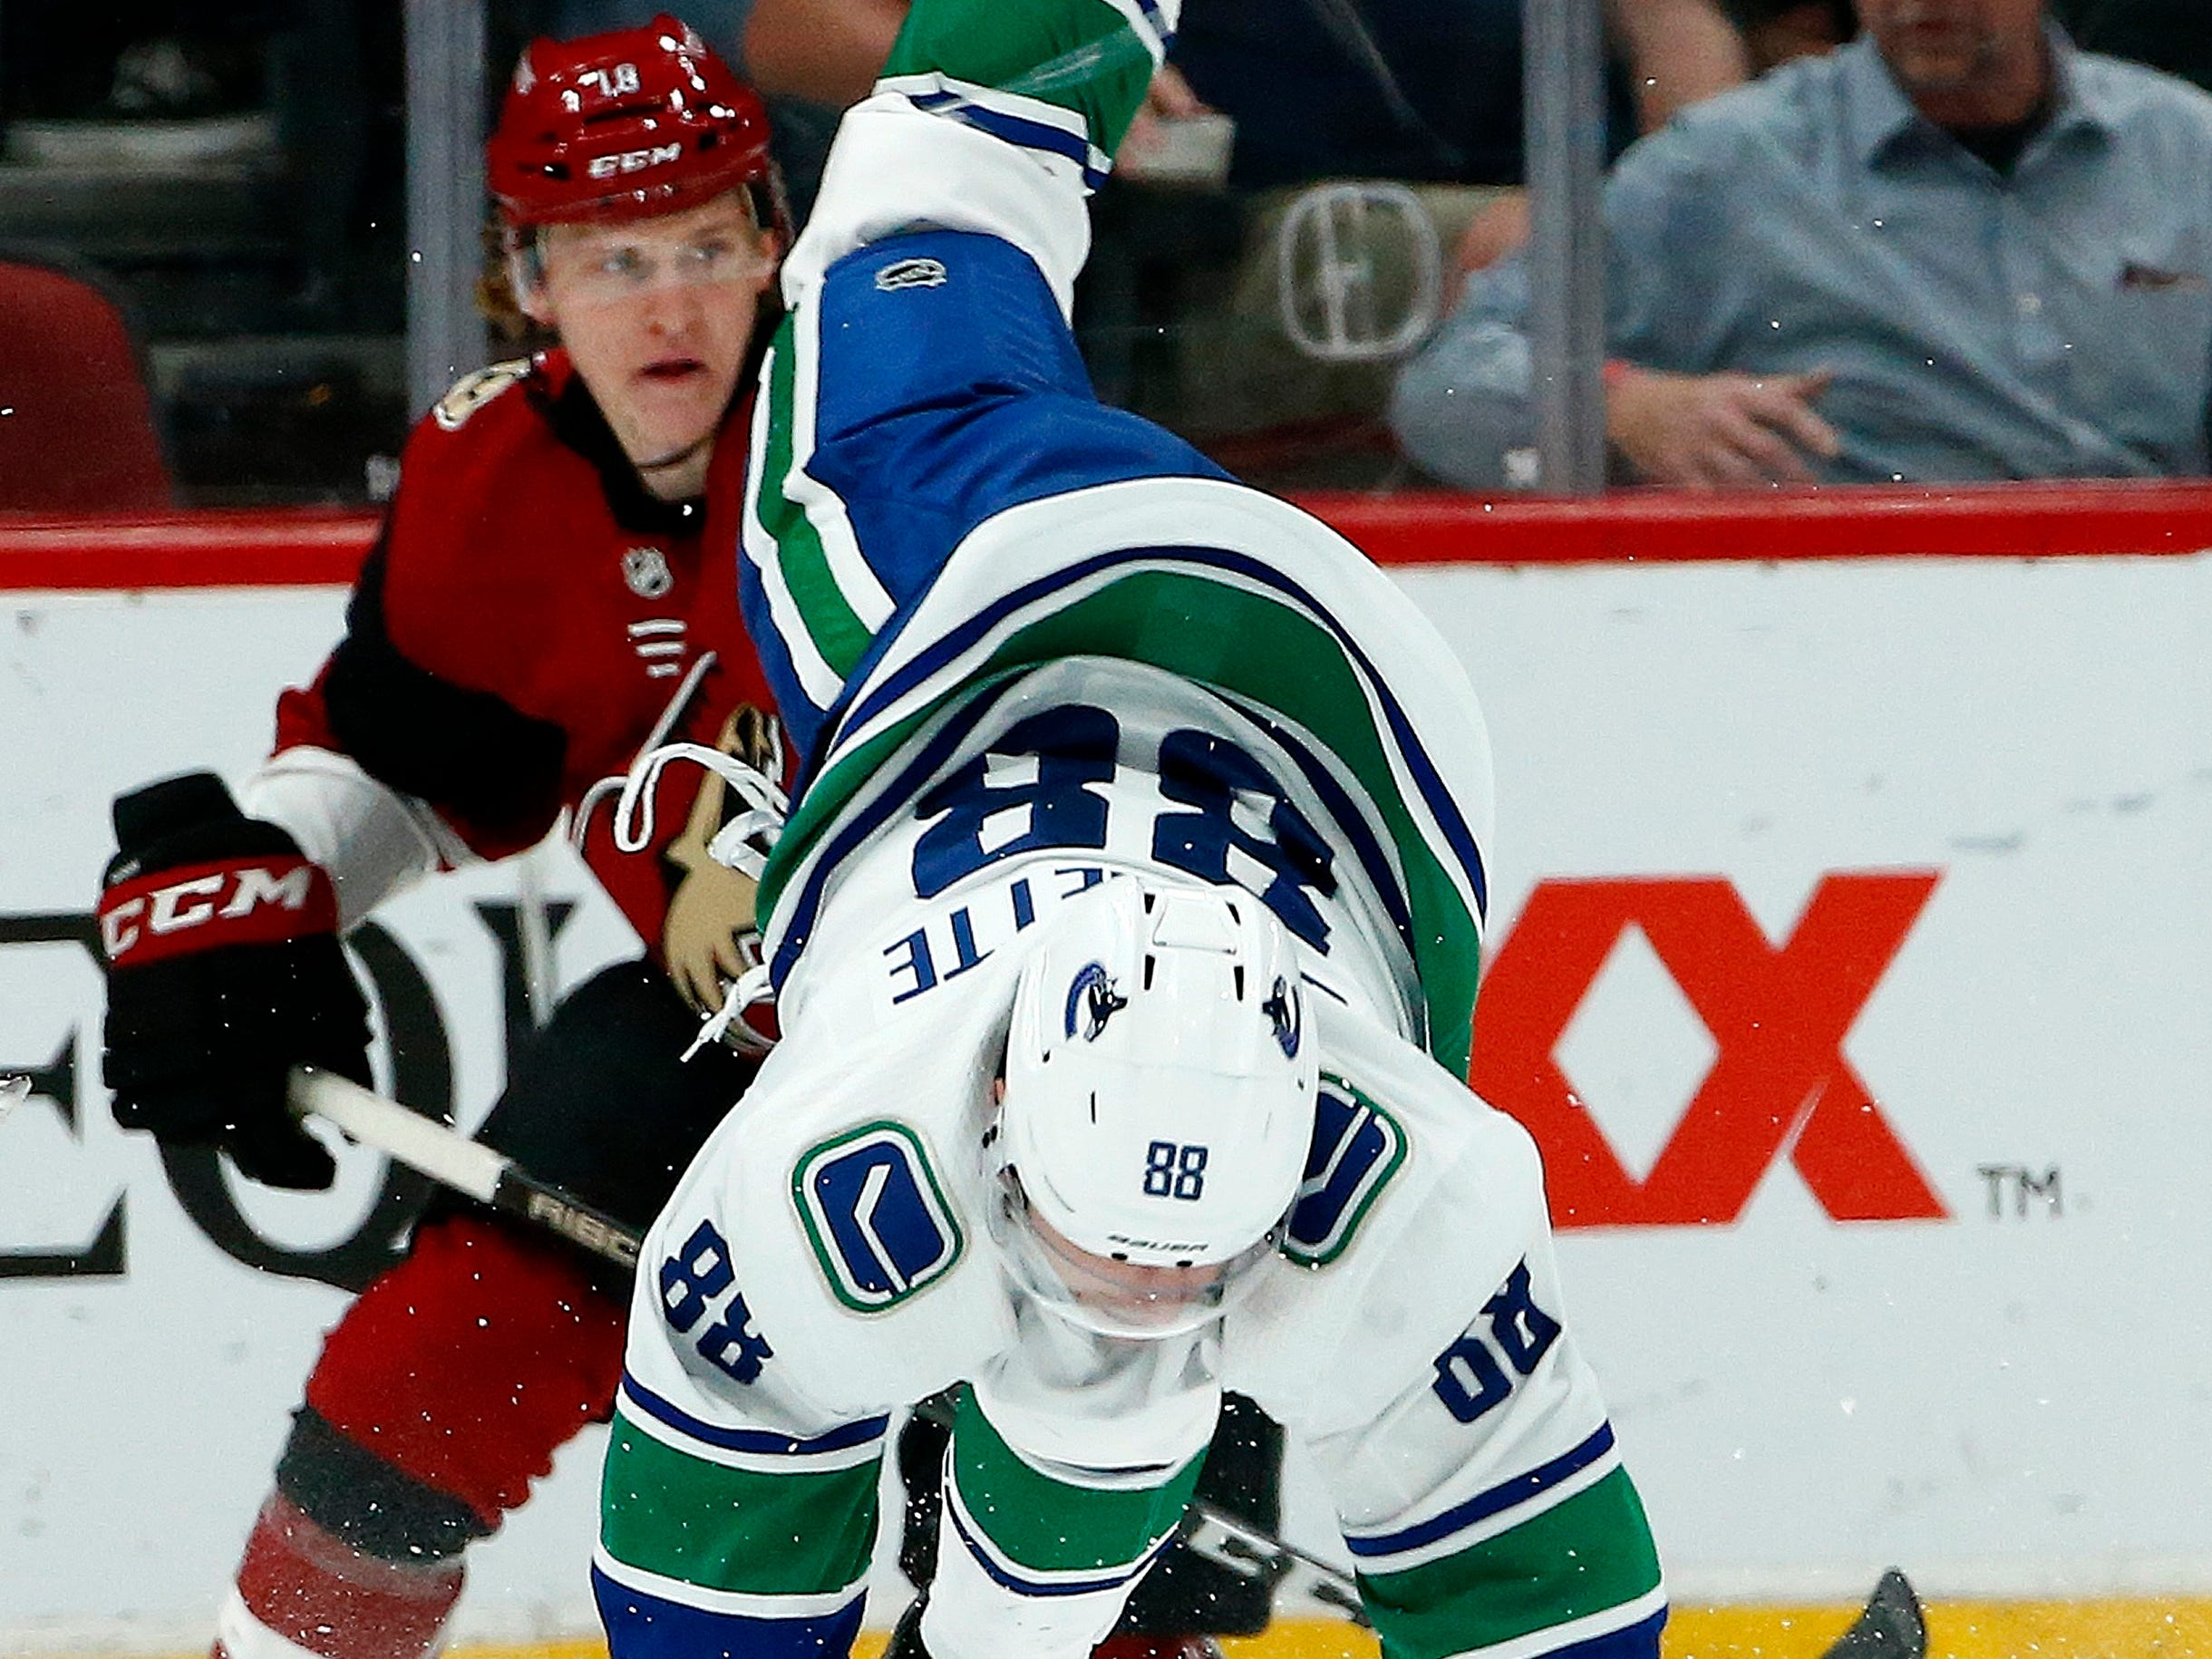 Vancouver Canucks center Adam Gaudette (88) gets upended on a kneeing penalty by Arizona Coyotes' Conor Garland as Coyotes center Christian Dvorak, left, watches the movement of the puck during the first period of an NHL hockey game Thursday, Feb. 28, 2019, in Glendale, Ariz.